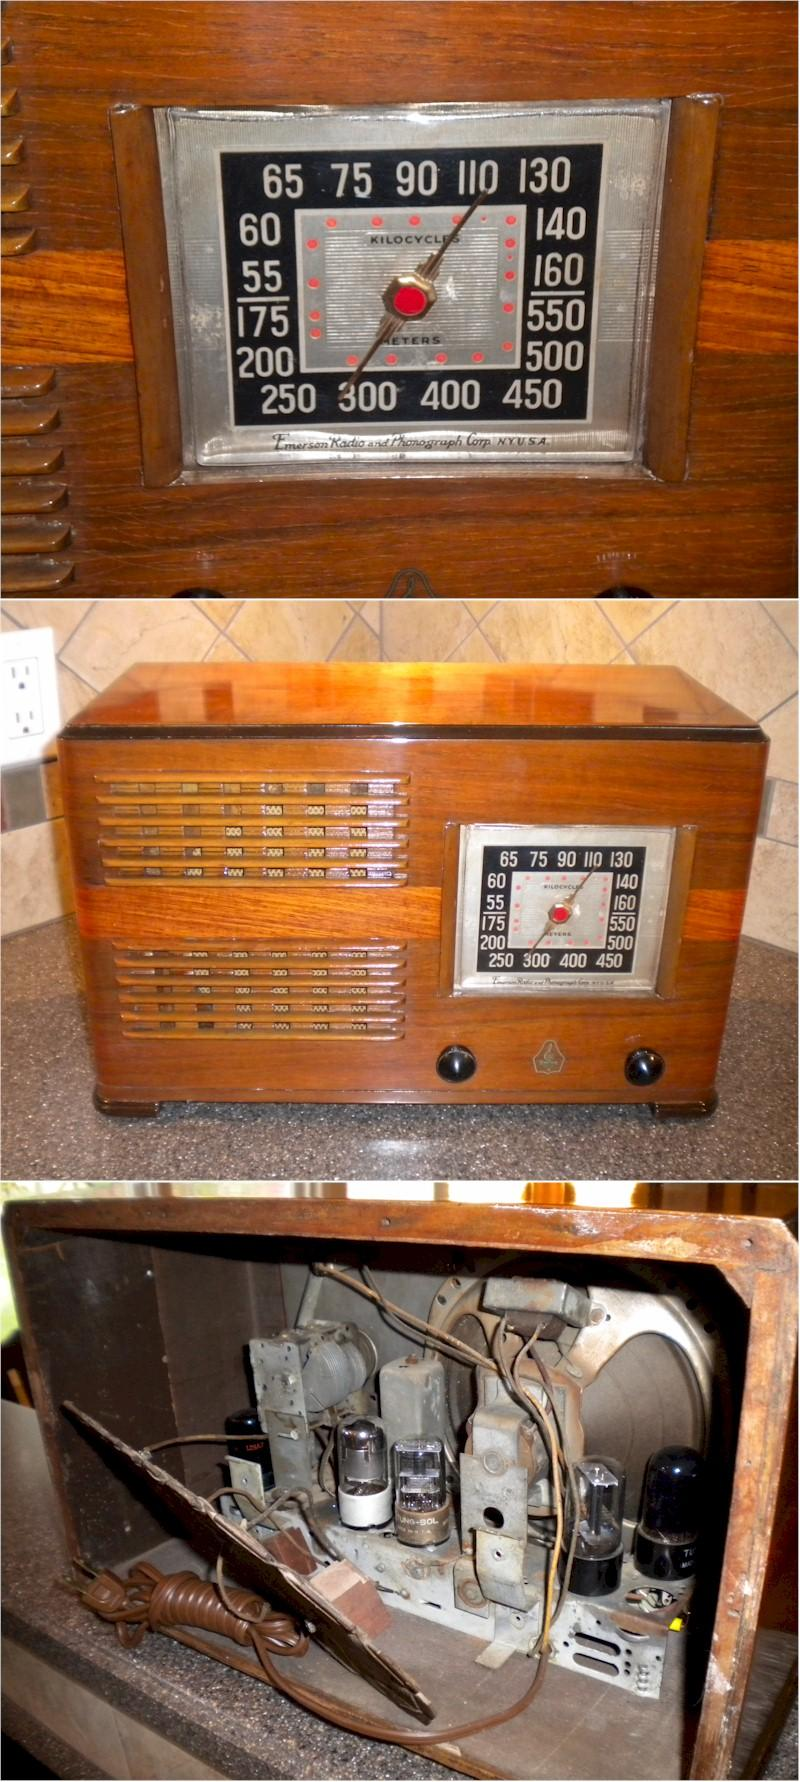 Emerson EH342 w/Ingraham Cabinet (1941)